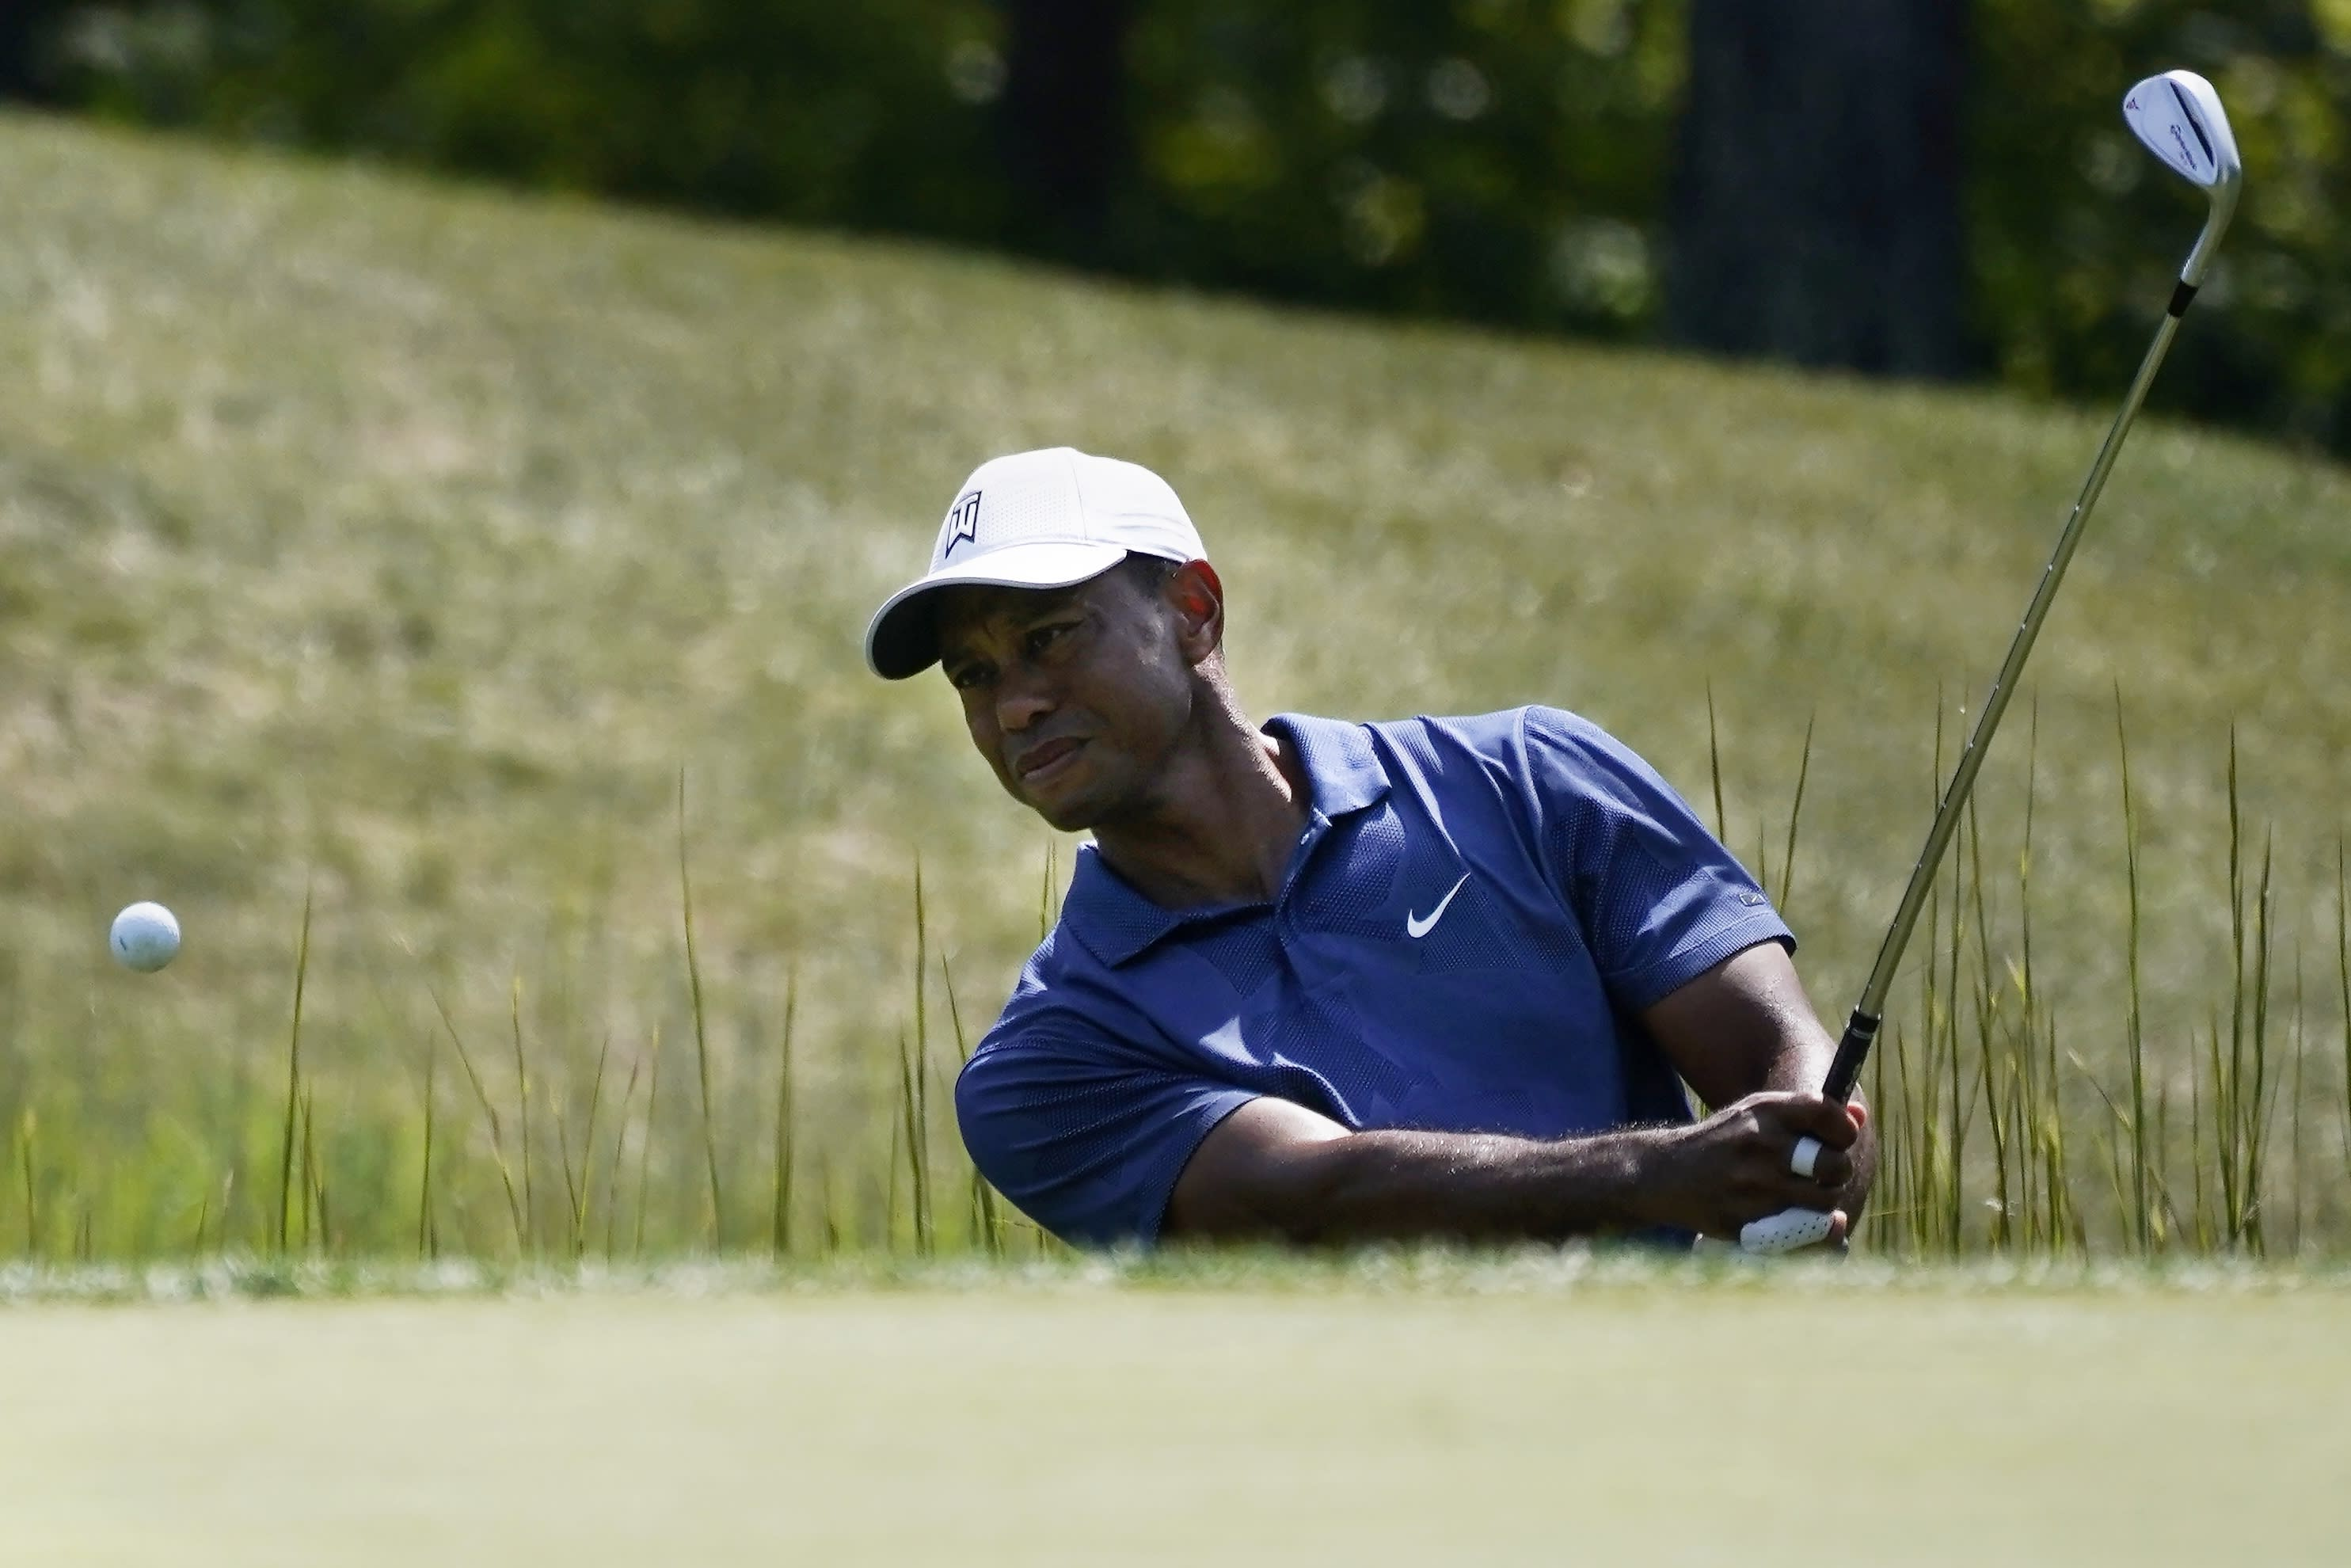 Tiger Woods makes his first attempted shot out of a trap on the fourteenth tee during the third round of the Northern Trust golf tournament at TPC Boston, Saturday, Aug. 22, 2020, in Norton, Mass. (AP Photo/Charles Krupa)